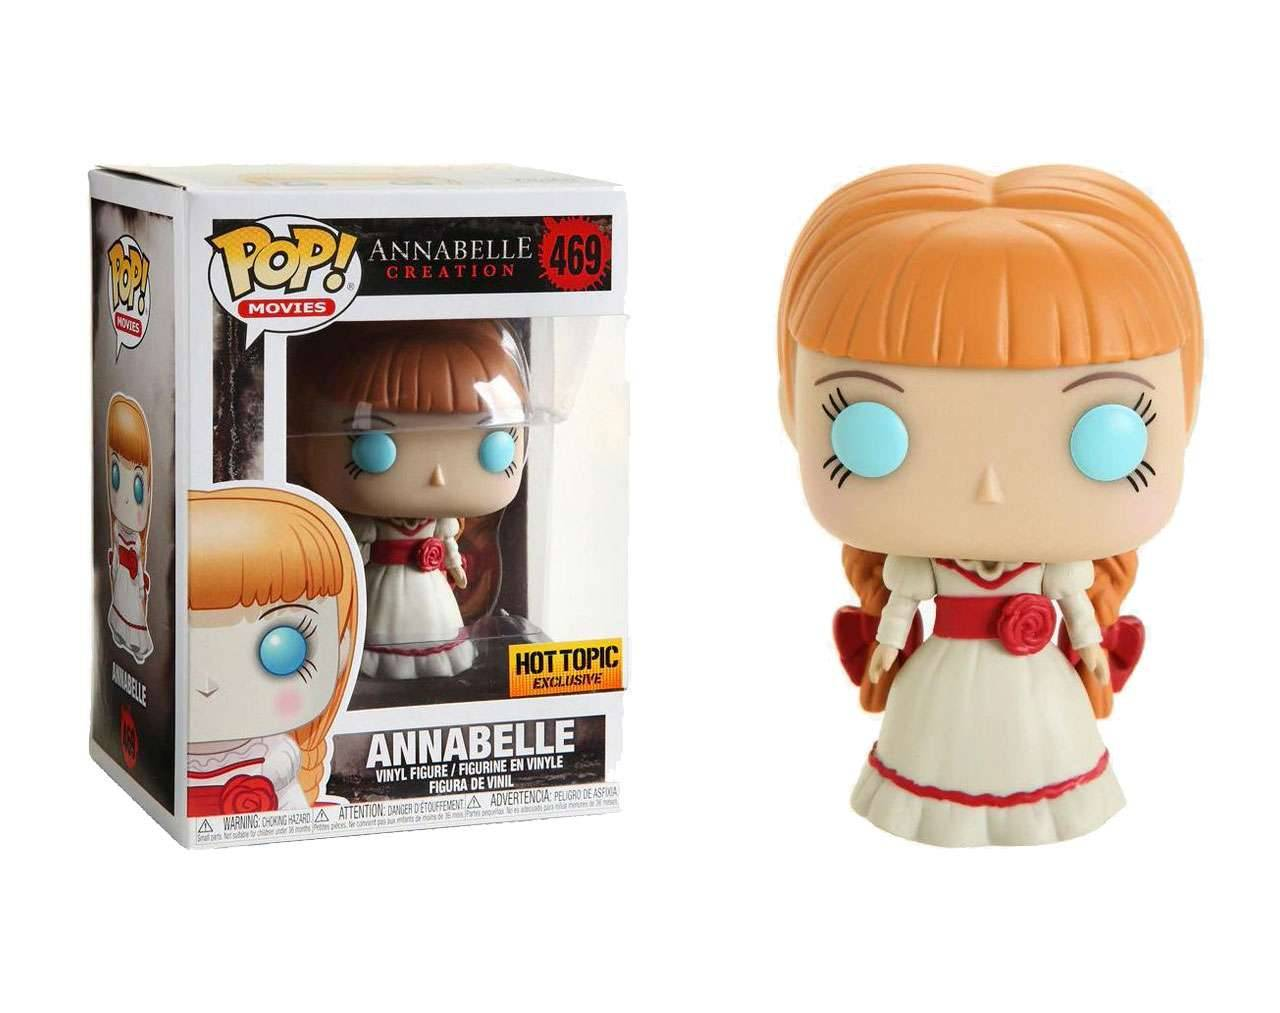 Annabelle (Undamaged) Pop! Vinyl